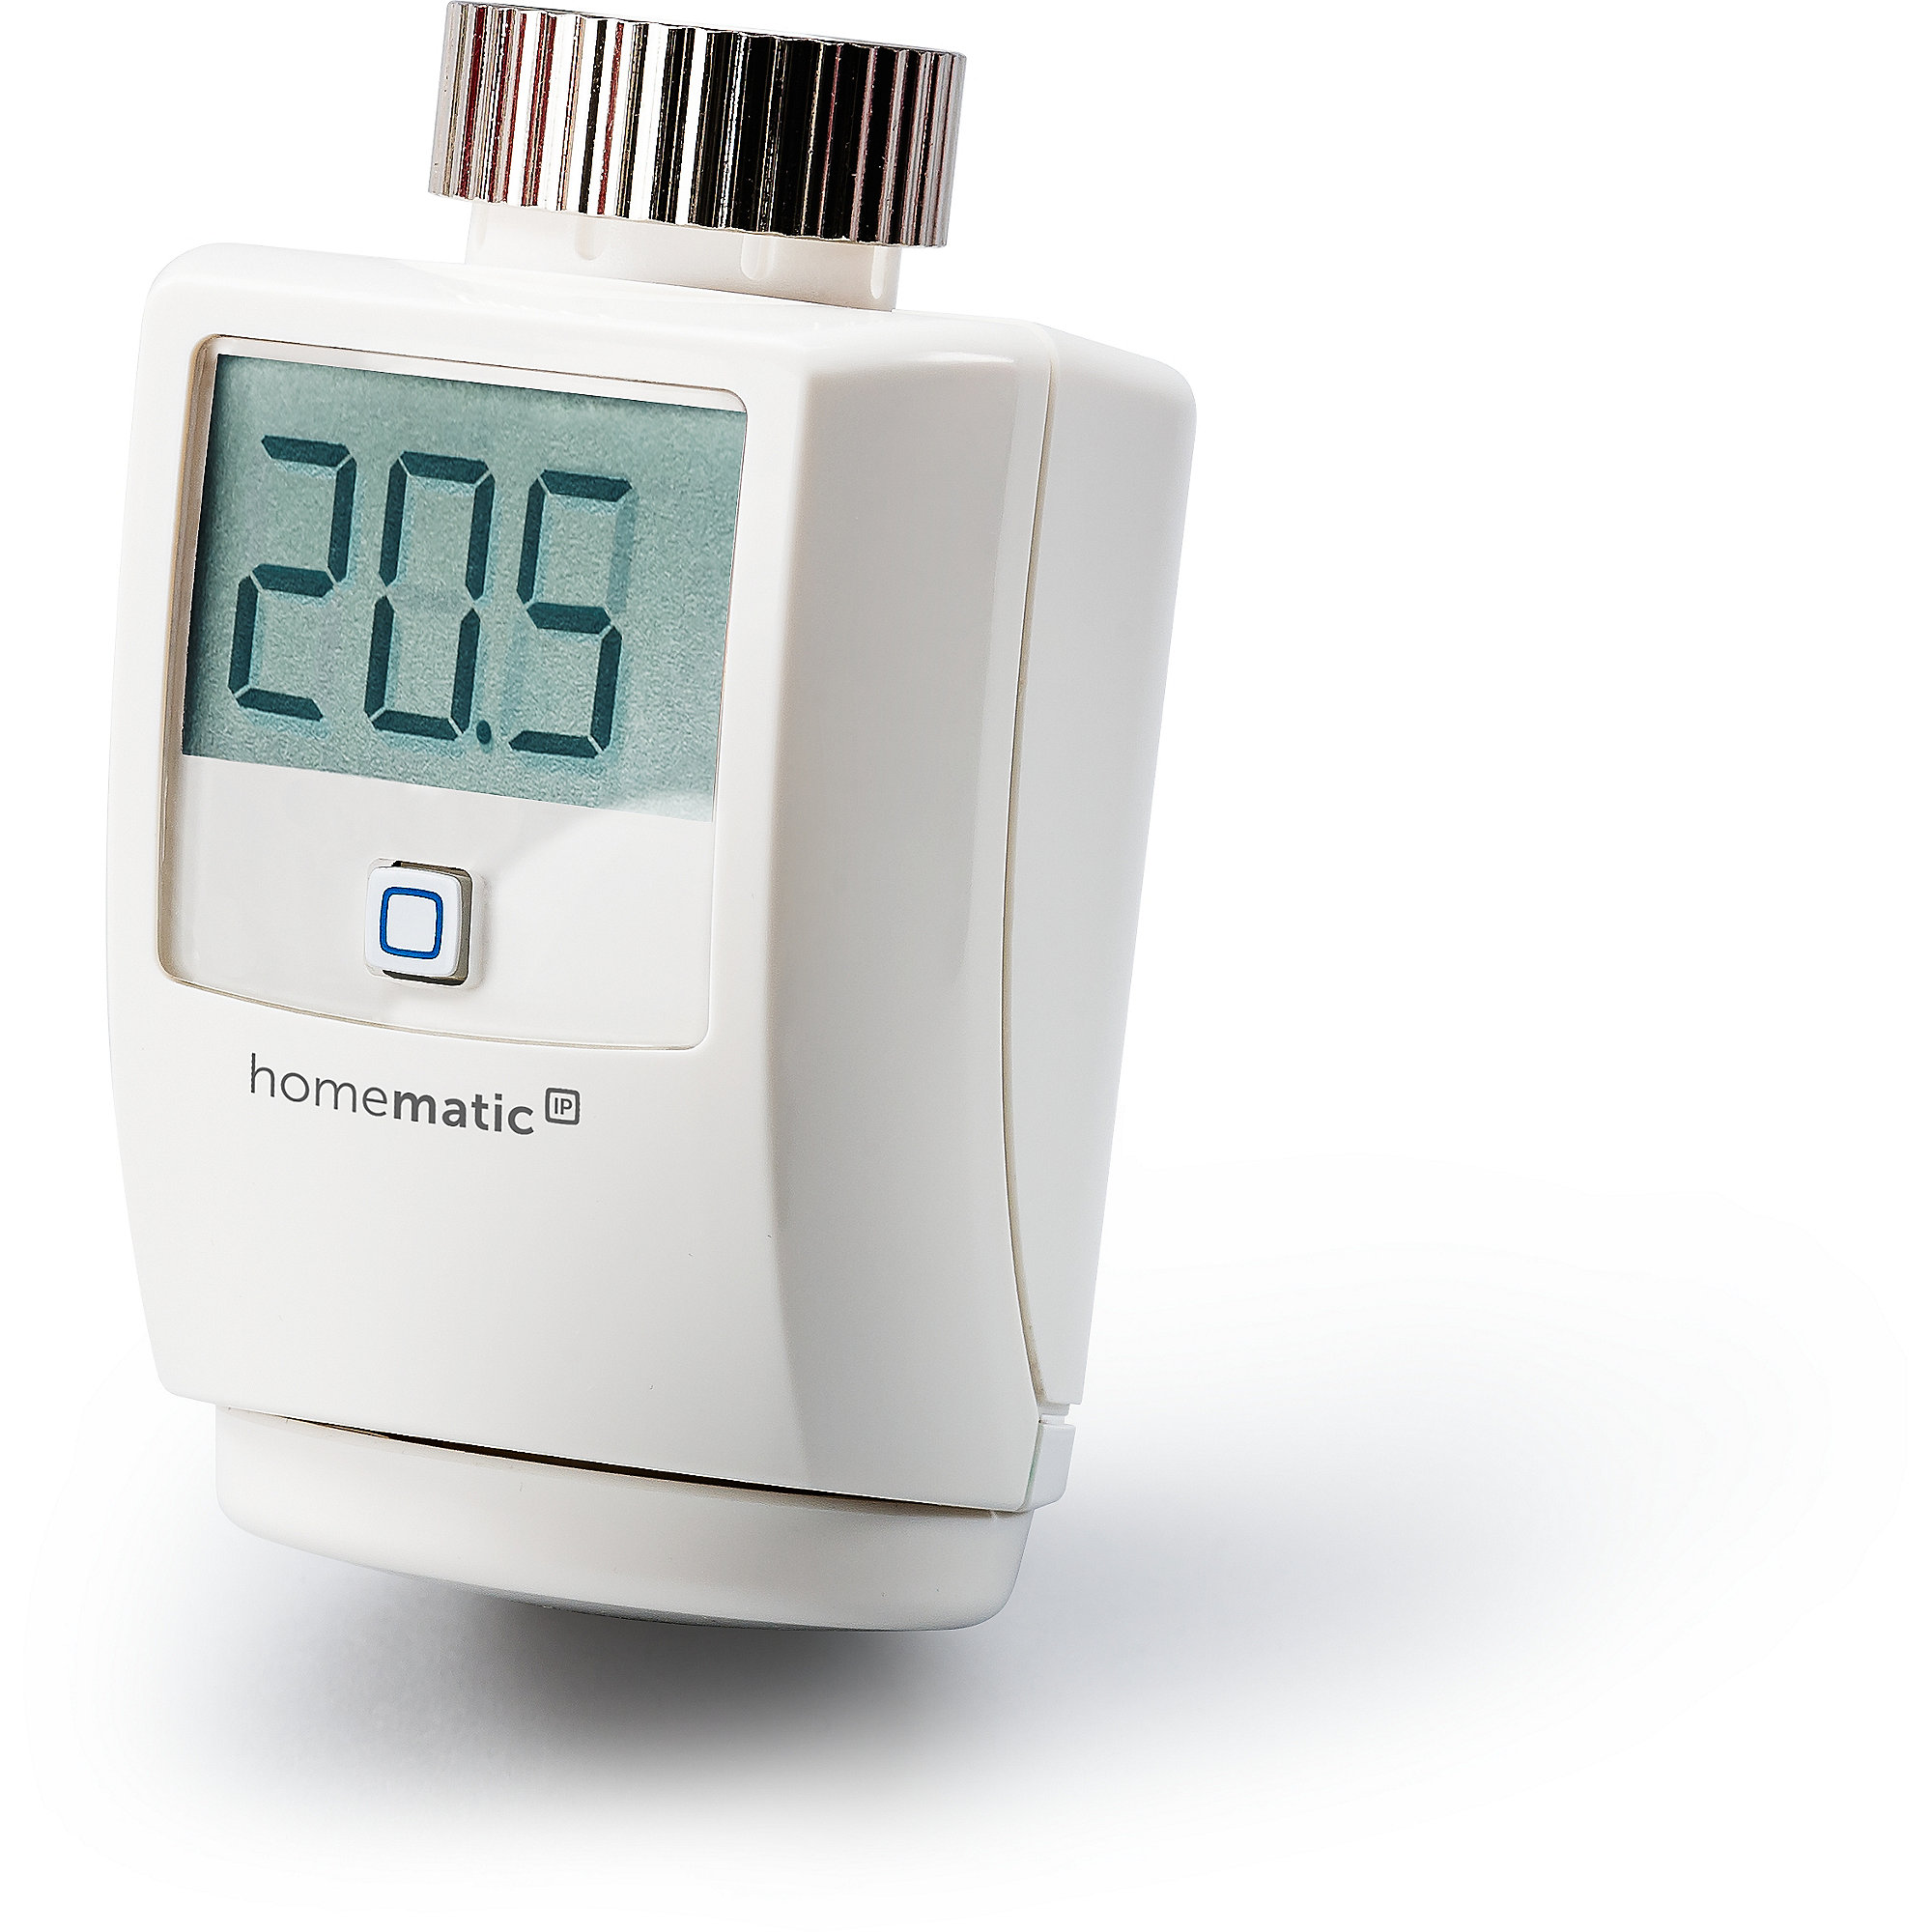 Homematic IP Heizkörperthermostat HMIP-eTRV 3er